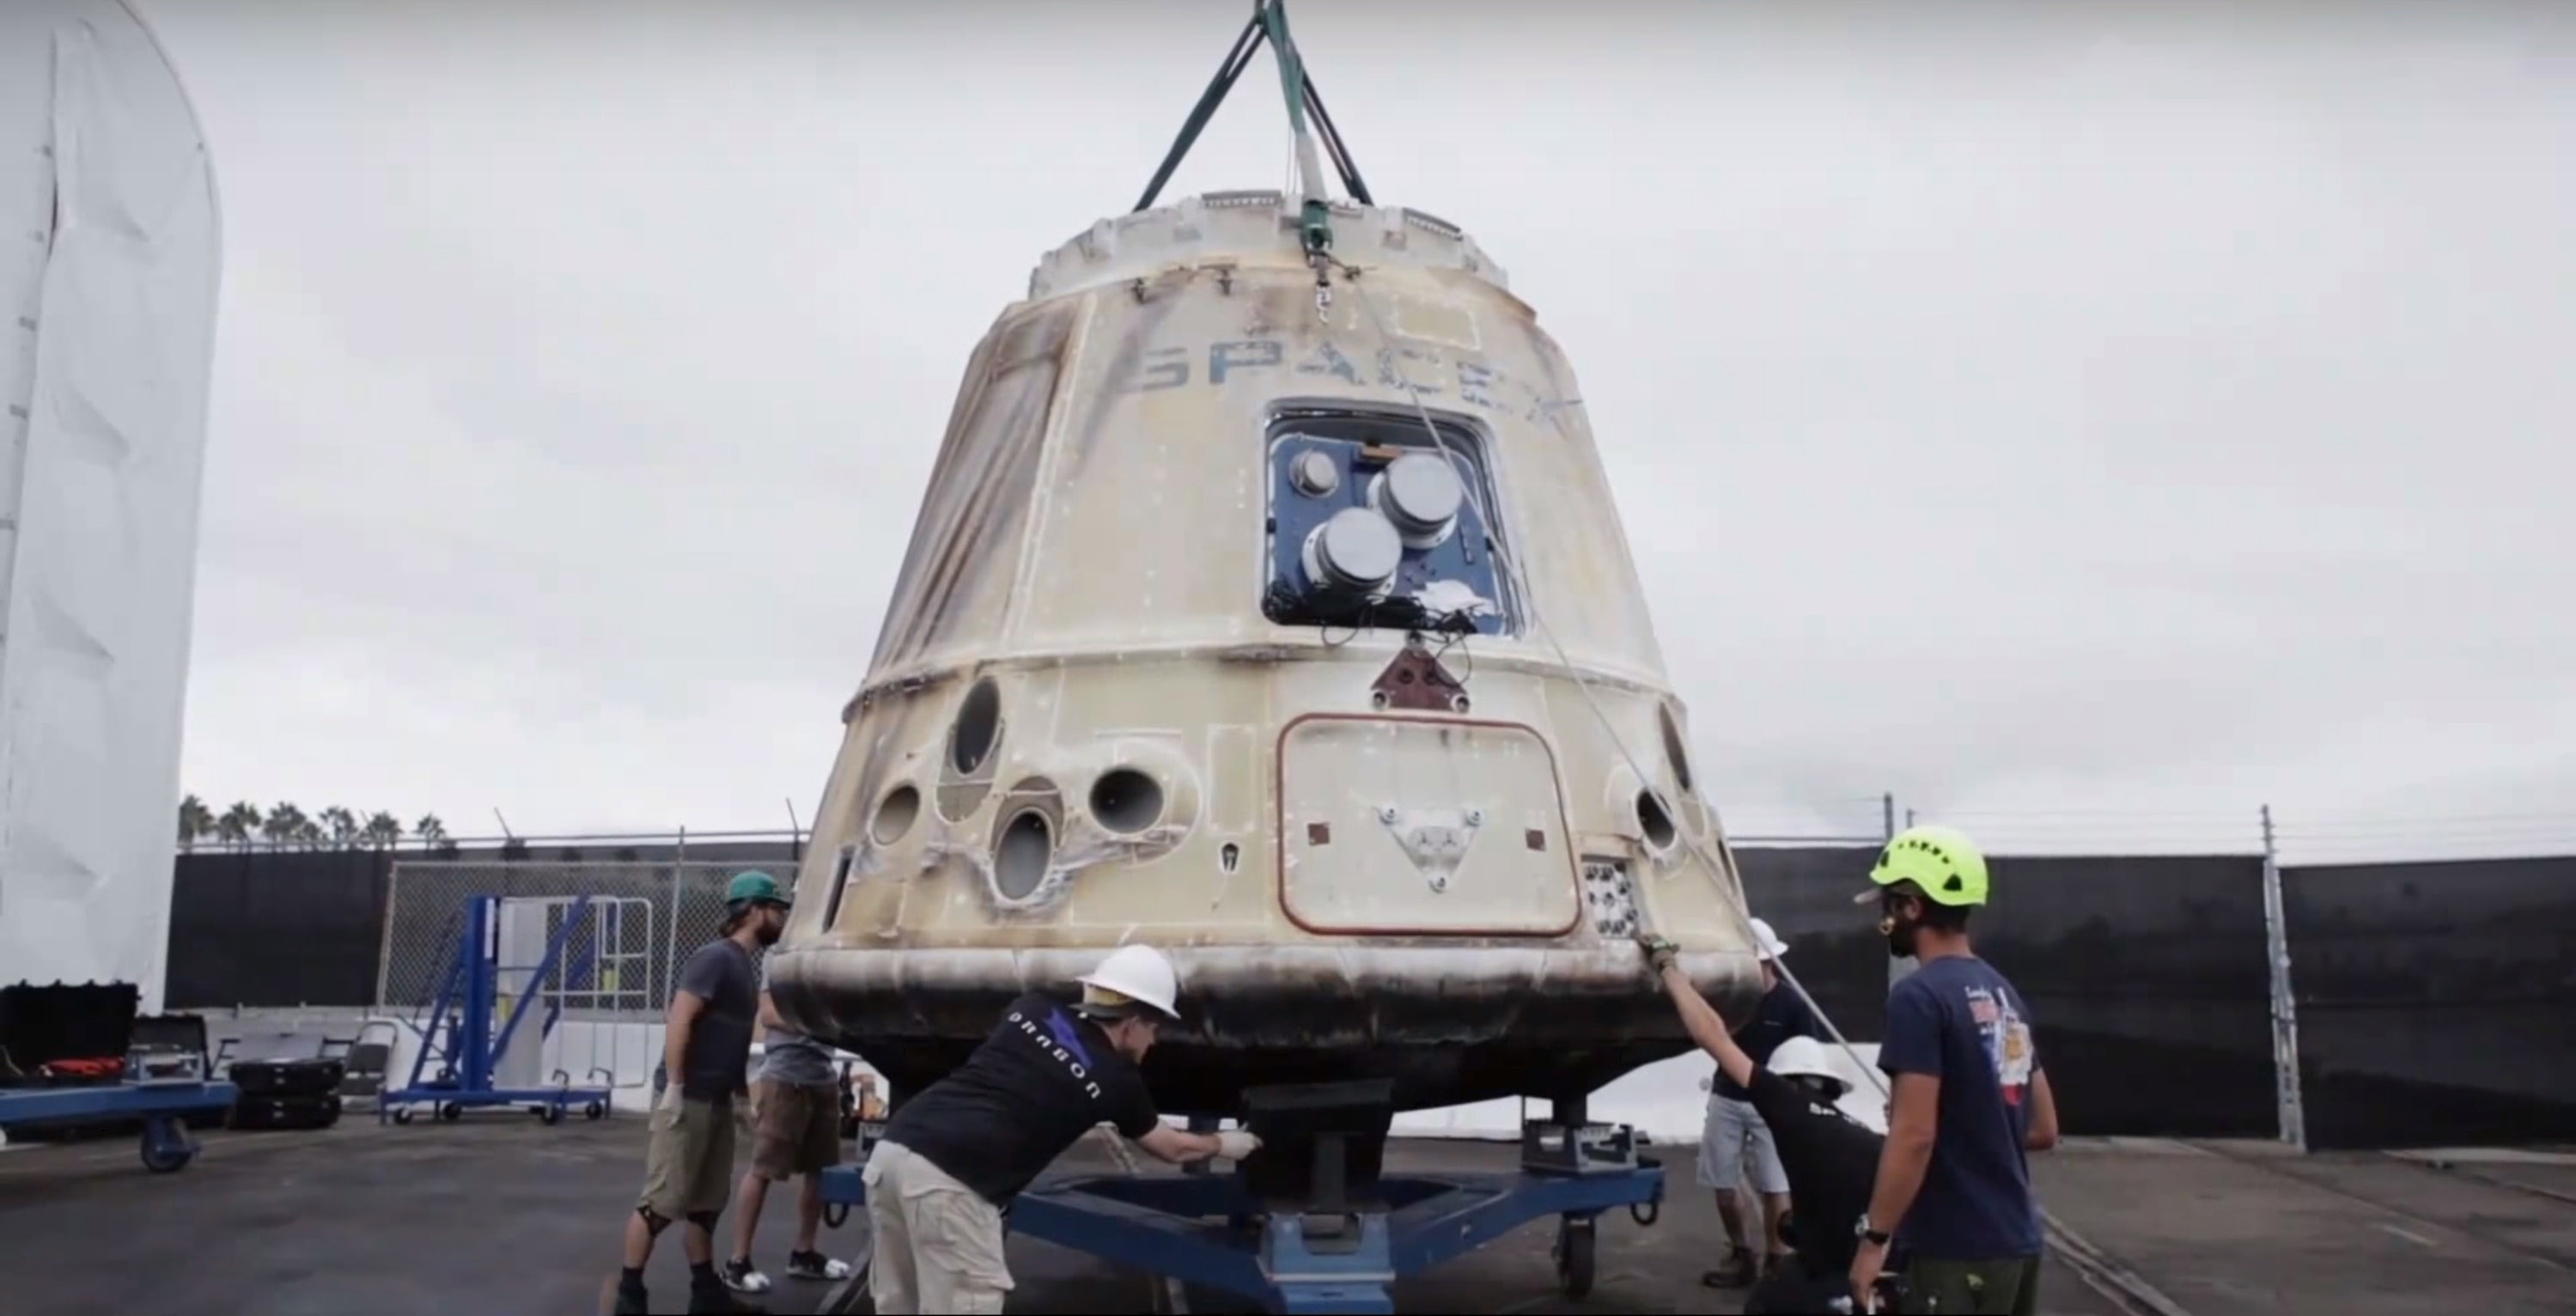 Dragon recovery (SpaceX)